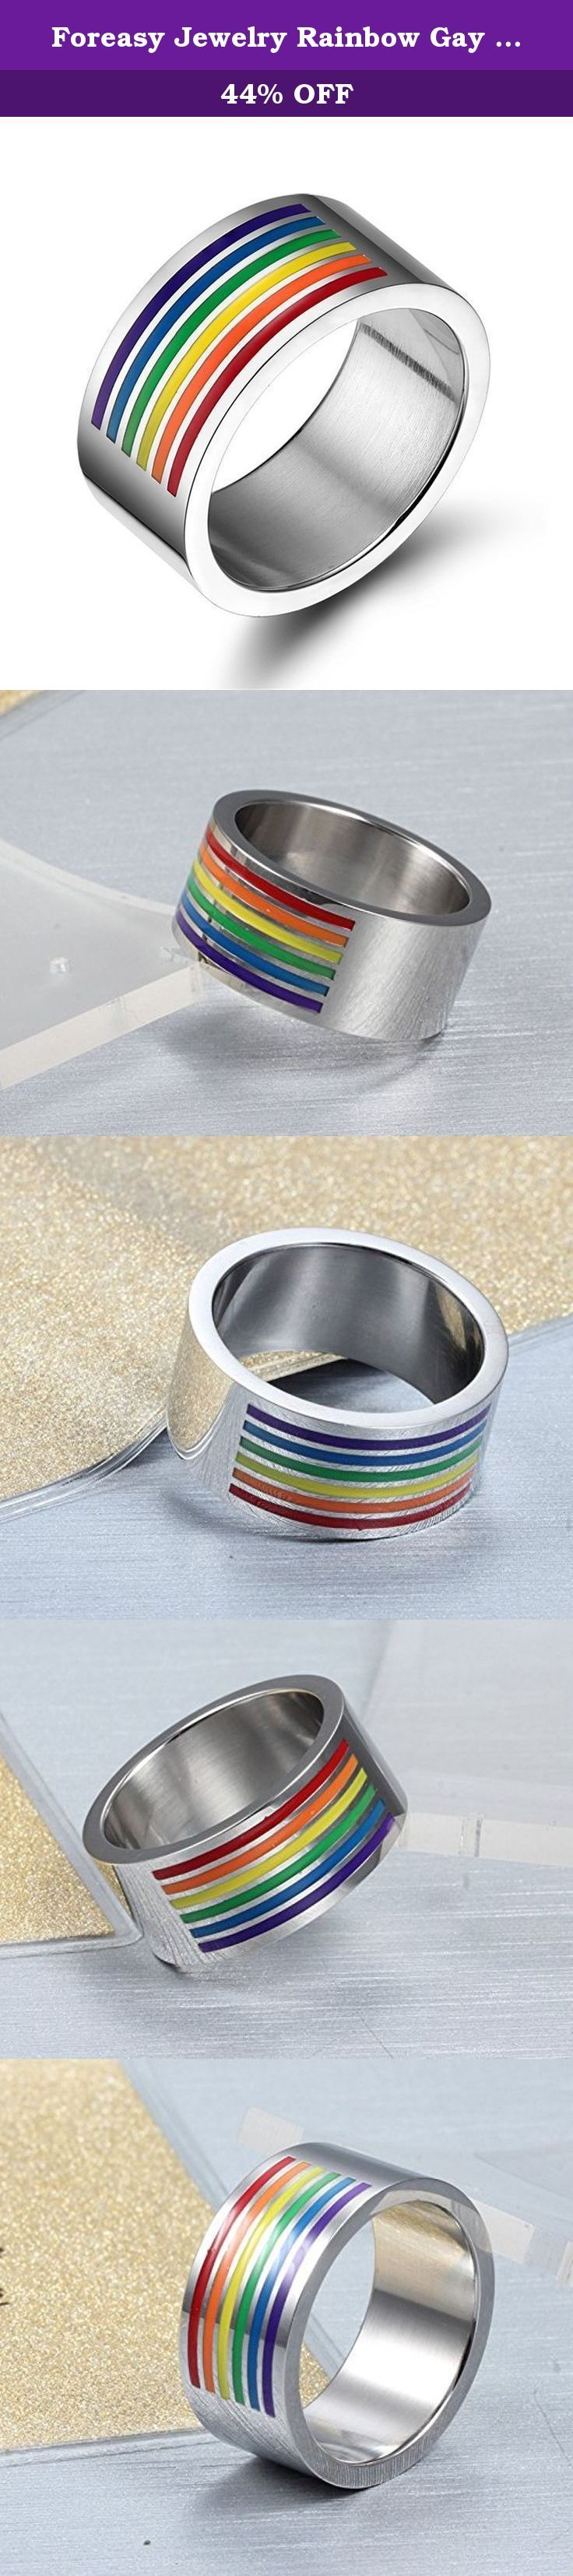 Foreasy Jewelry Rainbow Gay Lesbian Wedding Stainless Steel Band LGBT Pride Ring Size 8. The rainbow design is meaningful for us.We are eager for freedom and diversity.This Stainless Rainbow Ring will long last with you and your love.